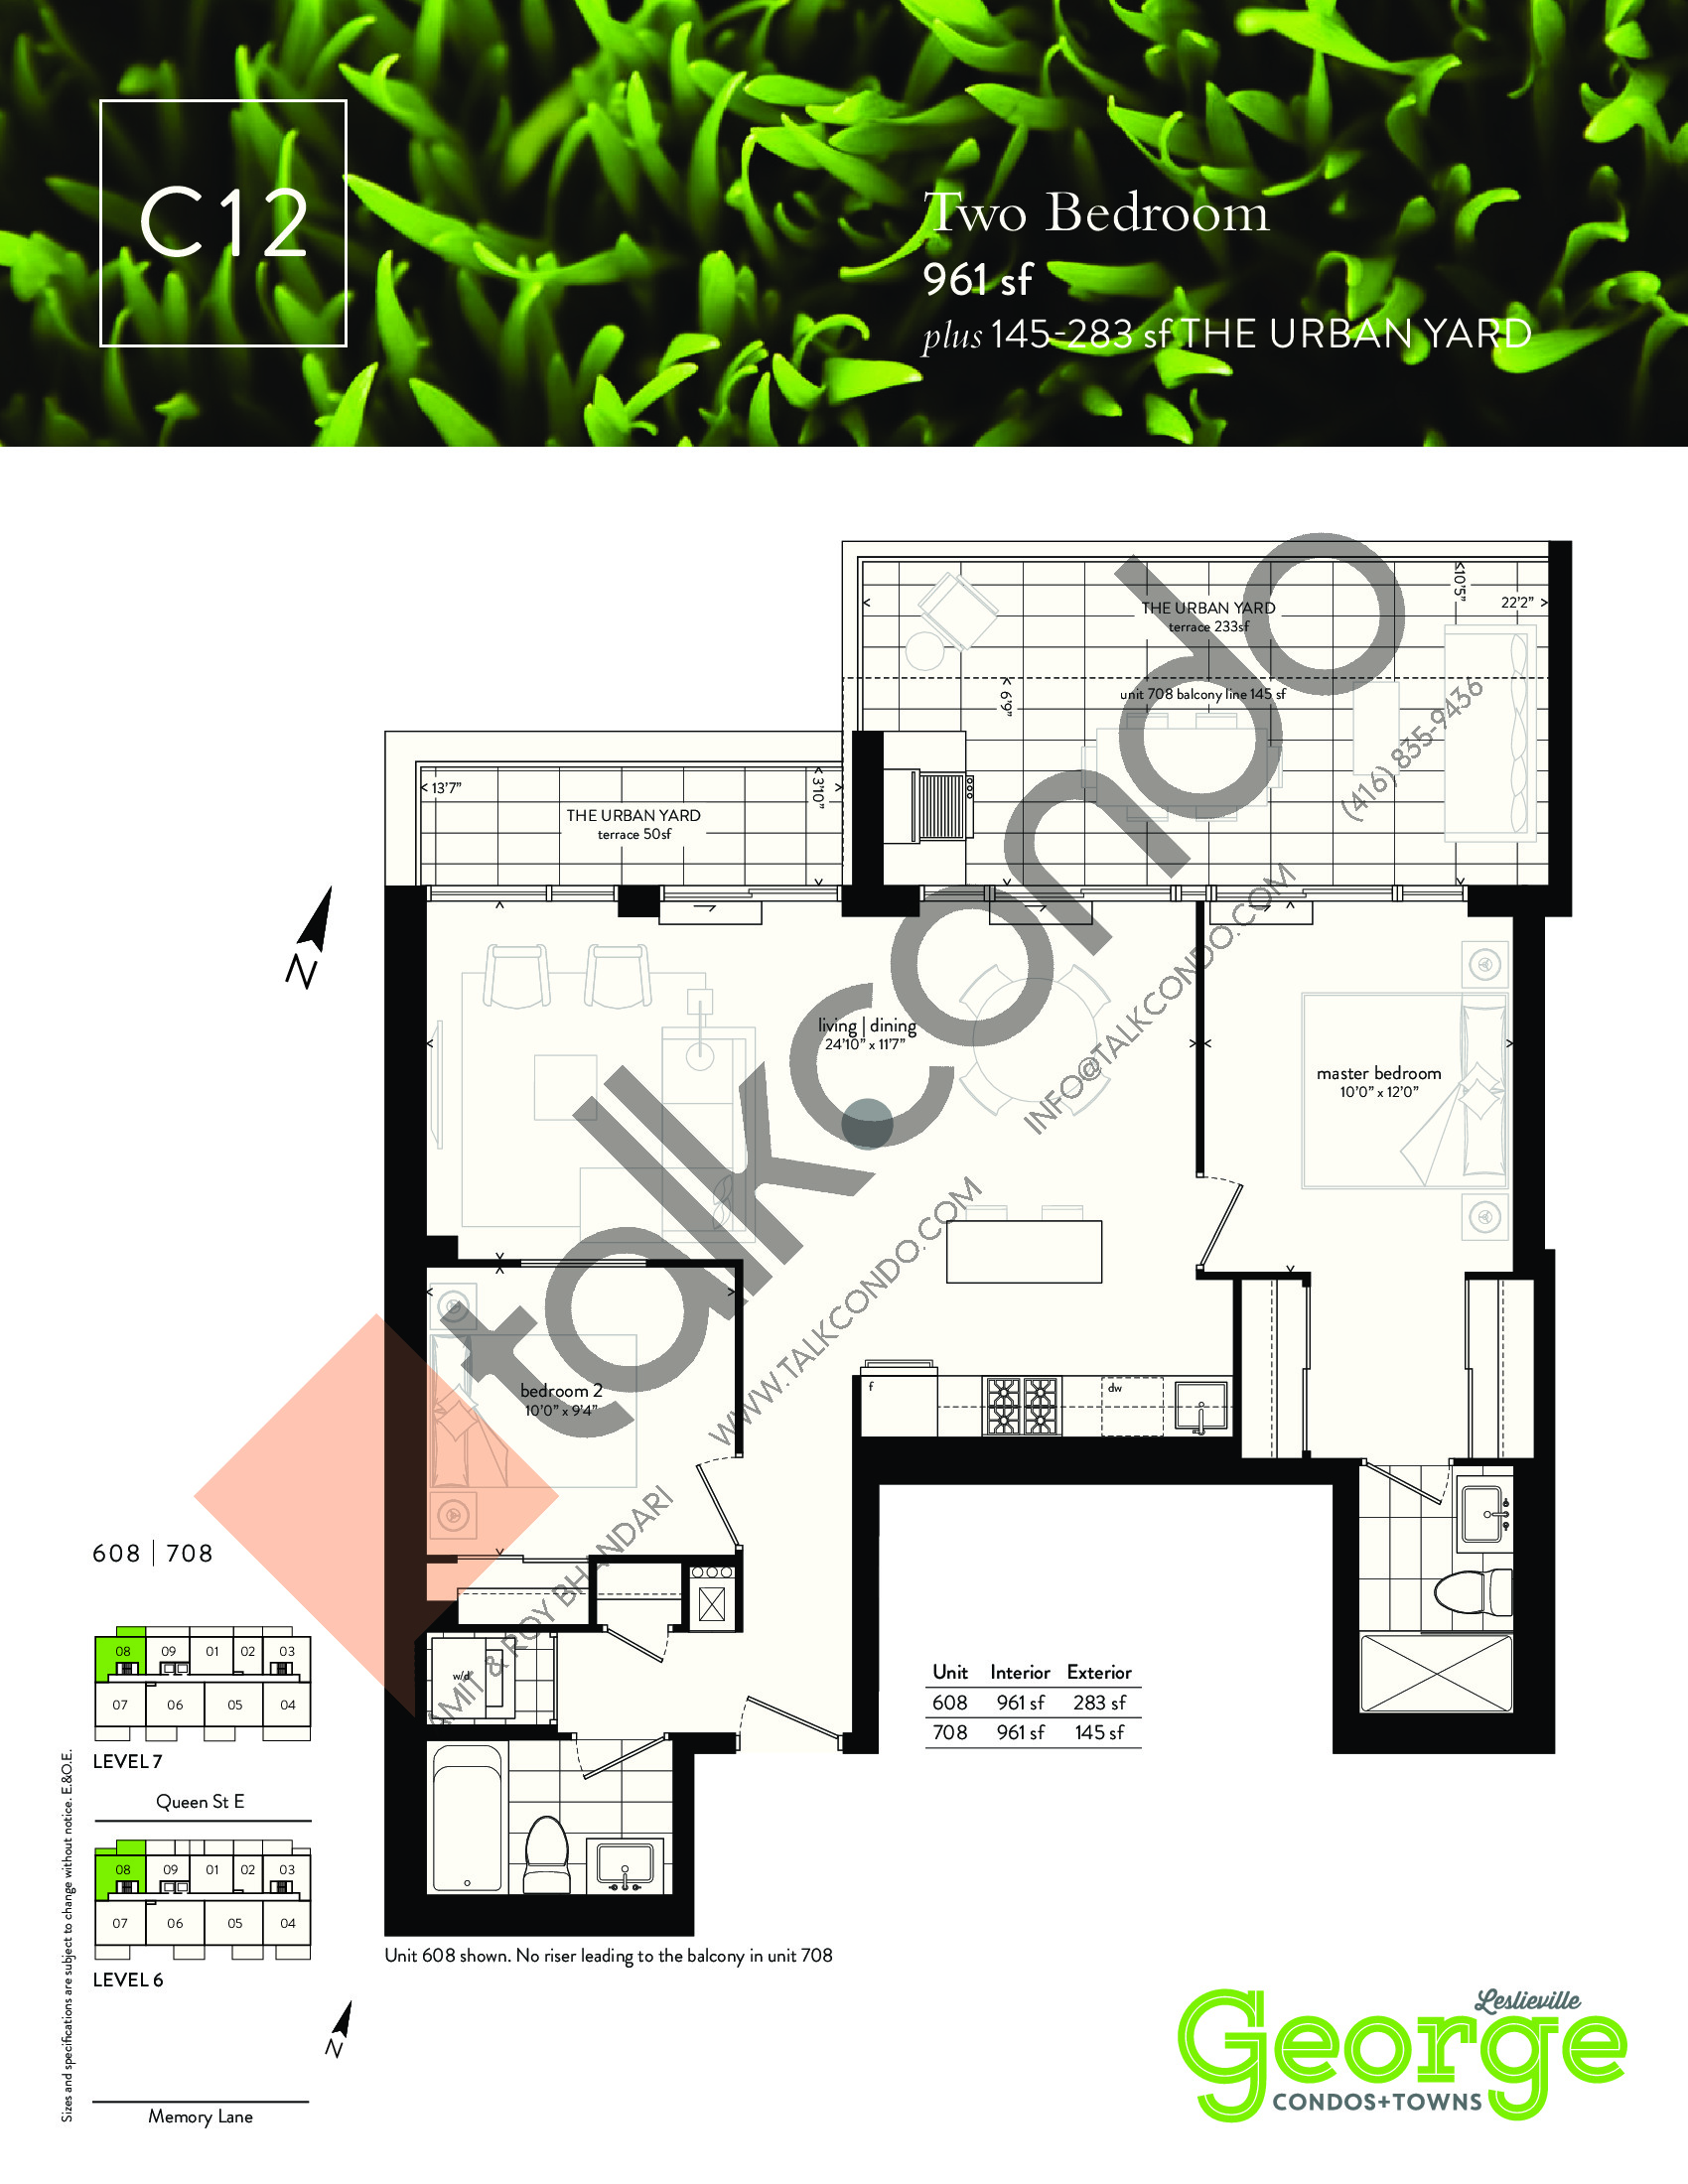 C12 Floor Plan at George Condos & Towns - 961 sq.ft